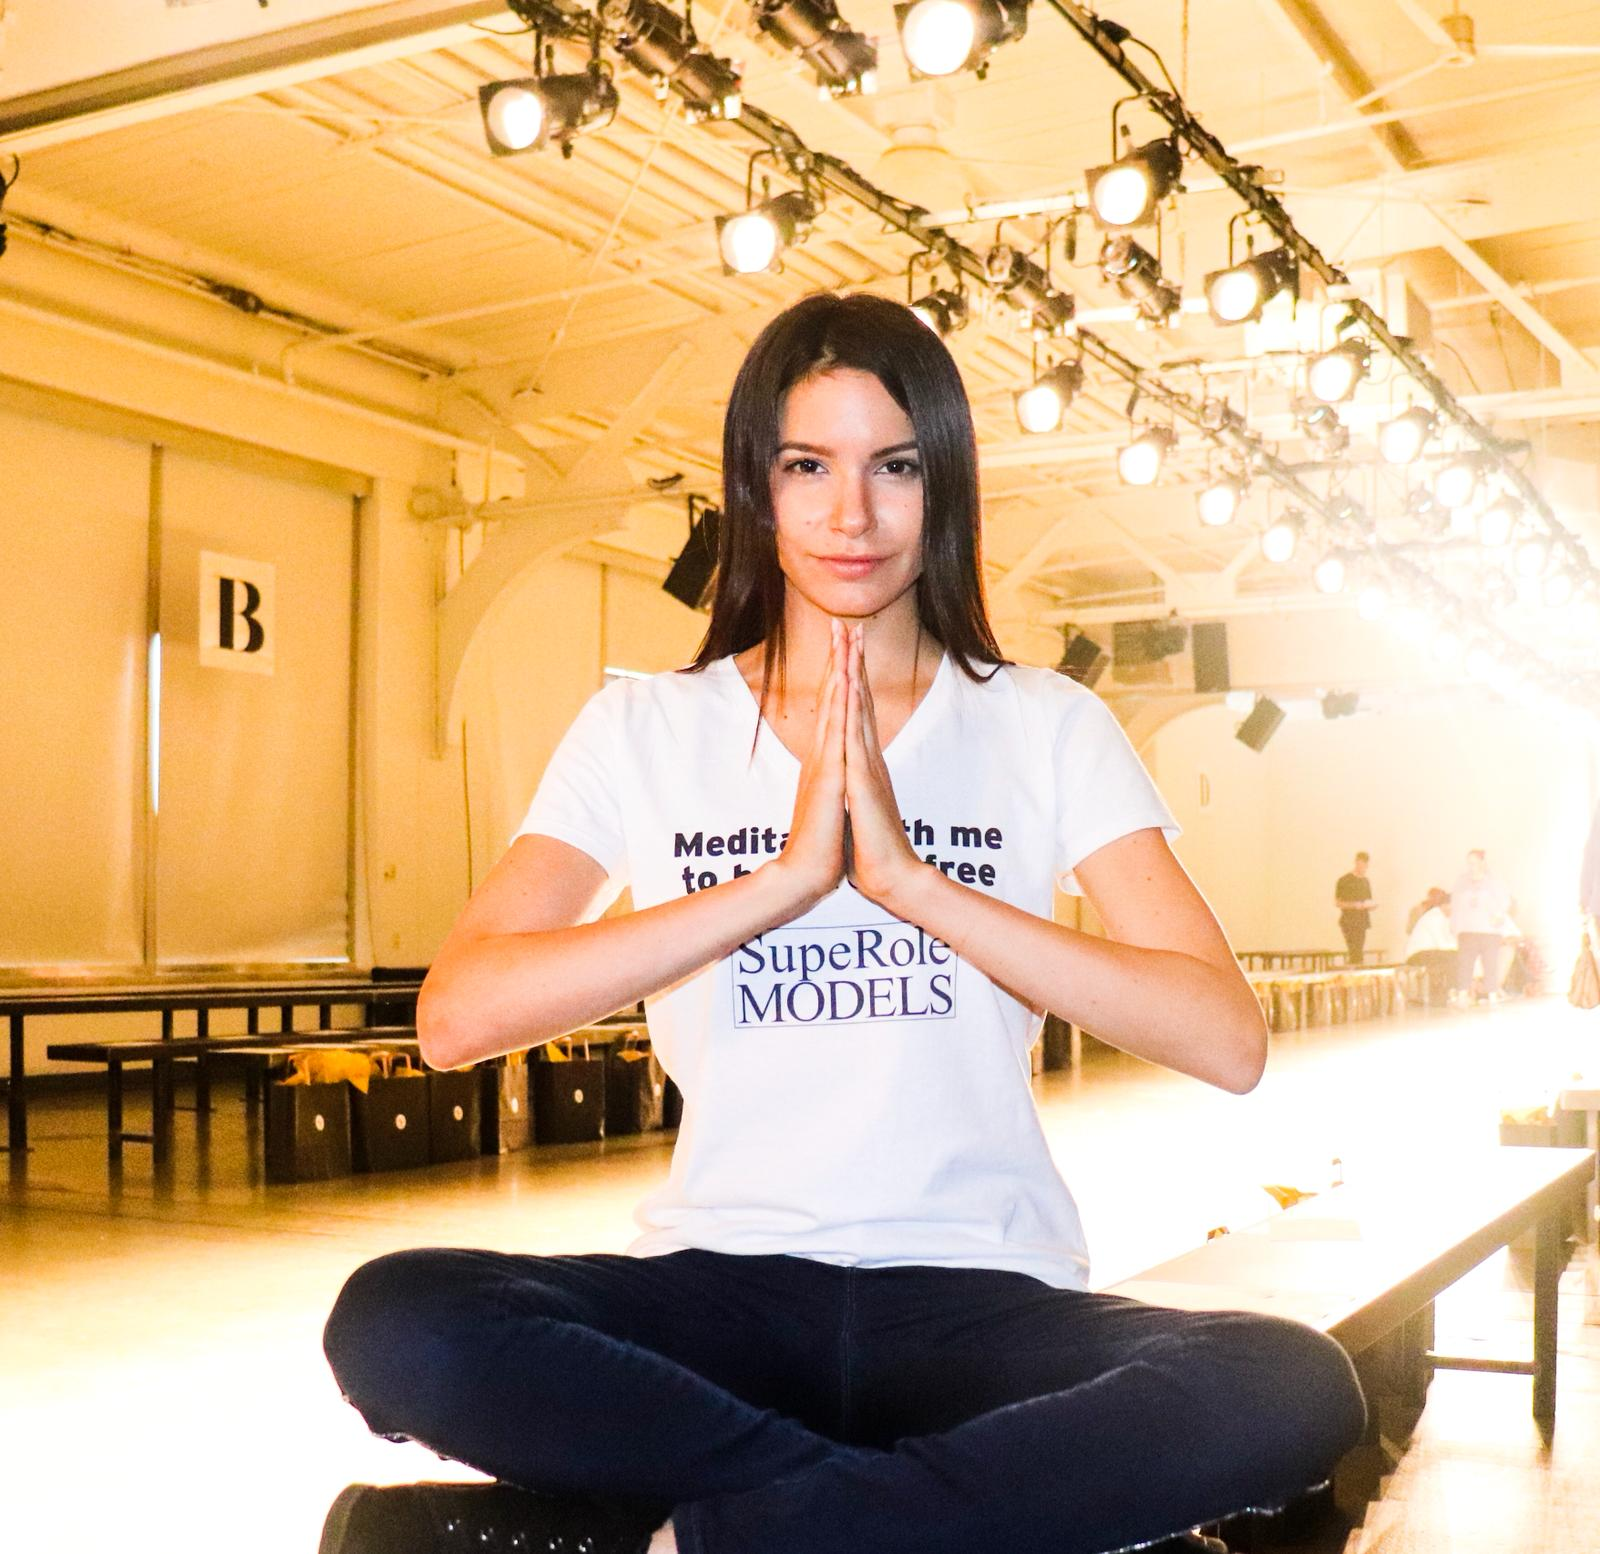 Meditation NYFW - SupeRoleModels practiced meditation with models / makeup artists / photographers backstage during the NYFW September,2018